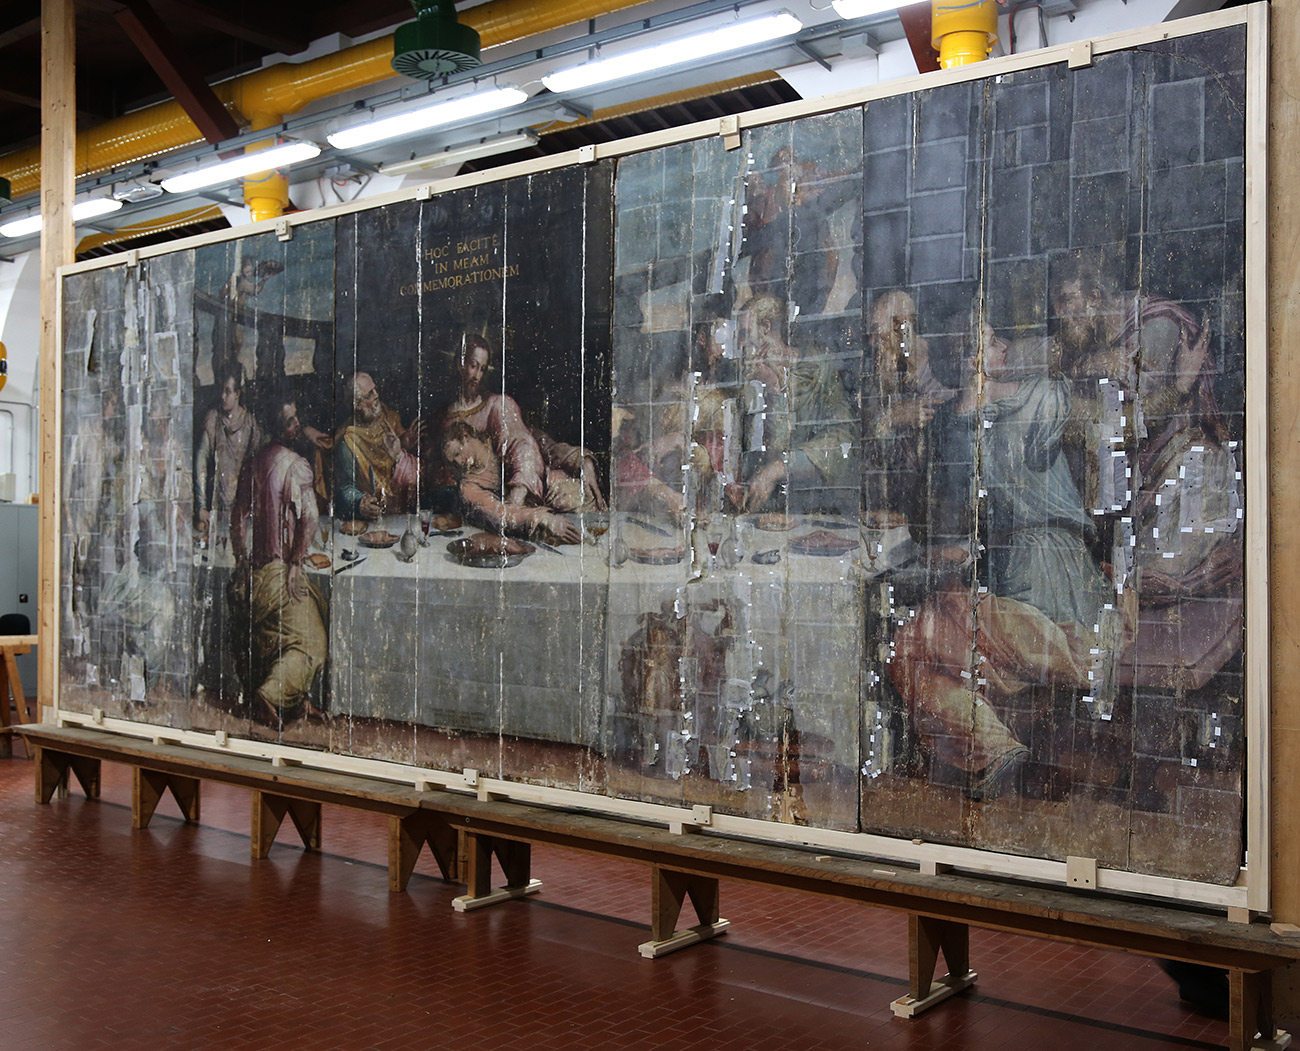 Oblique view of a large, tattered painting on a stretcher in a conservation studio